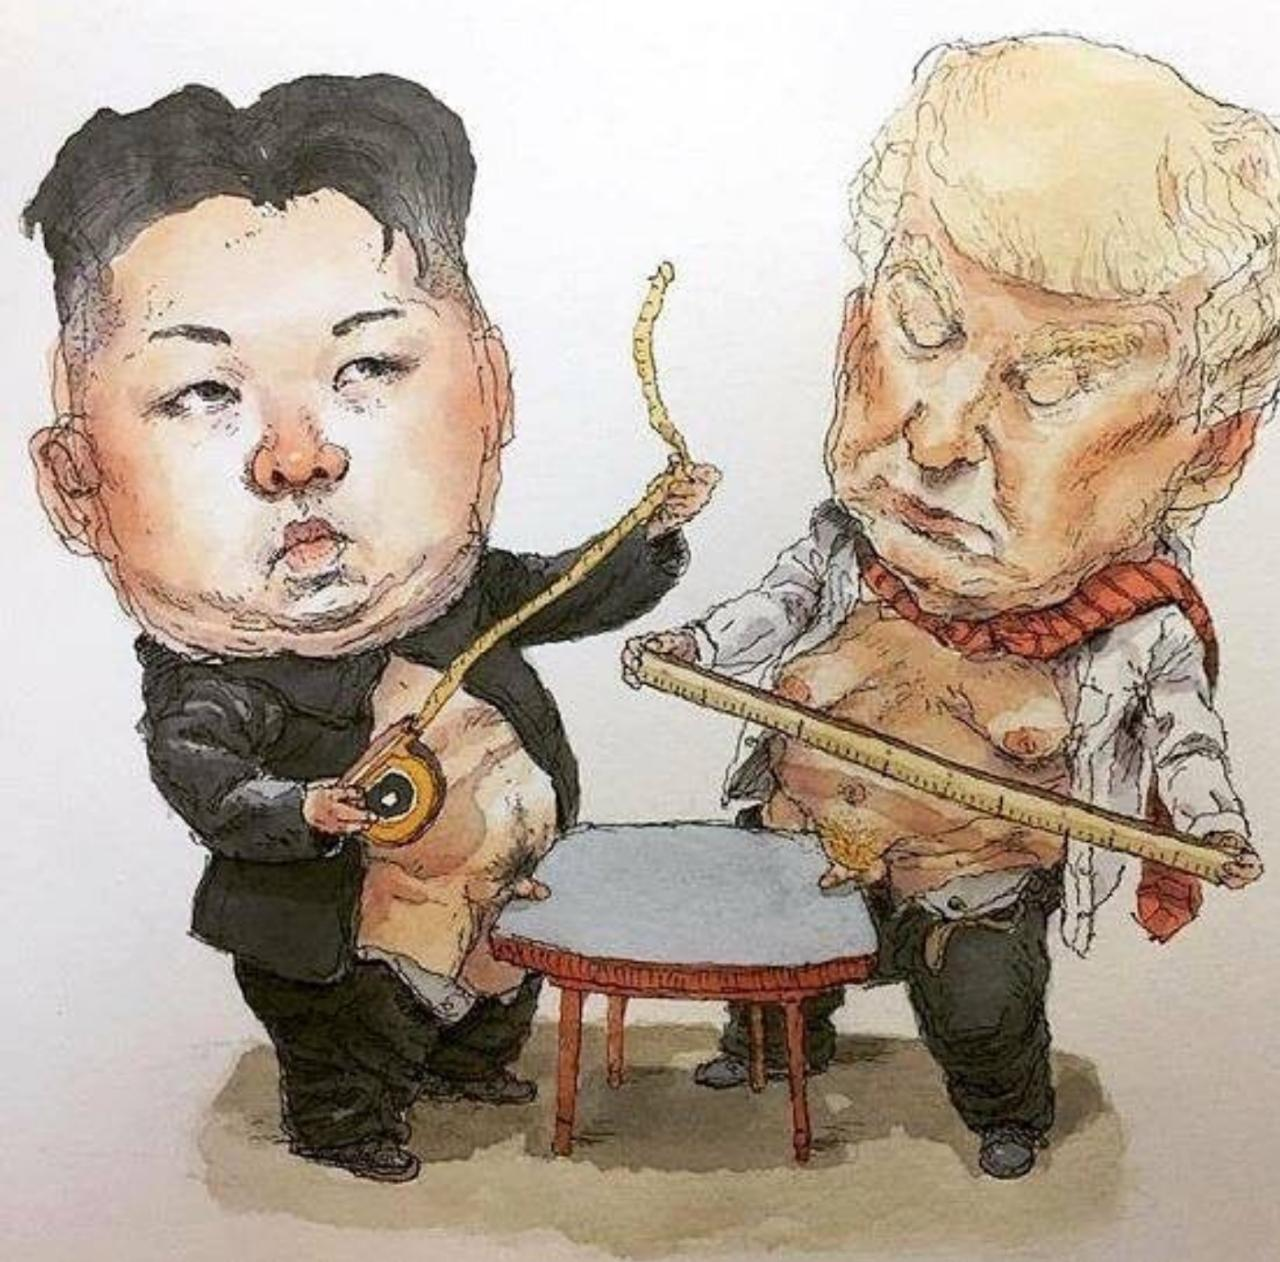 North korea vs USA. Trump and kim jong un